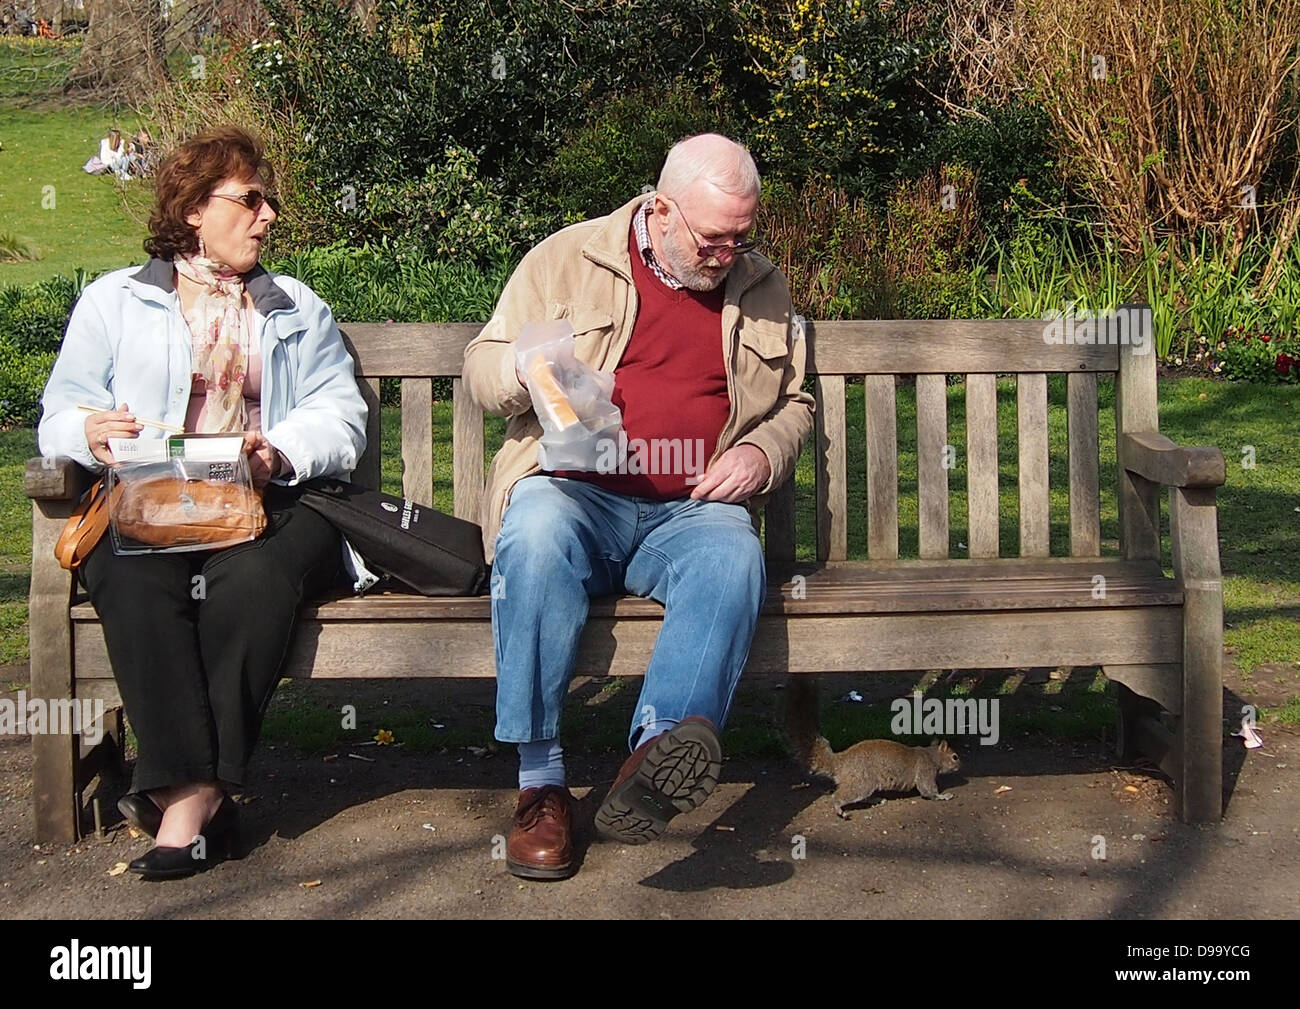 Couple on park bench startled by squirrel - Stock Image